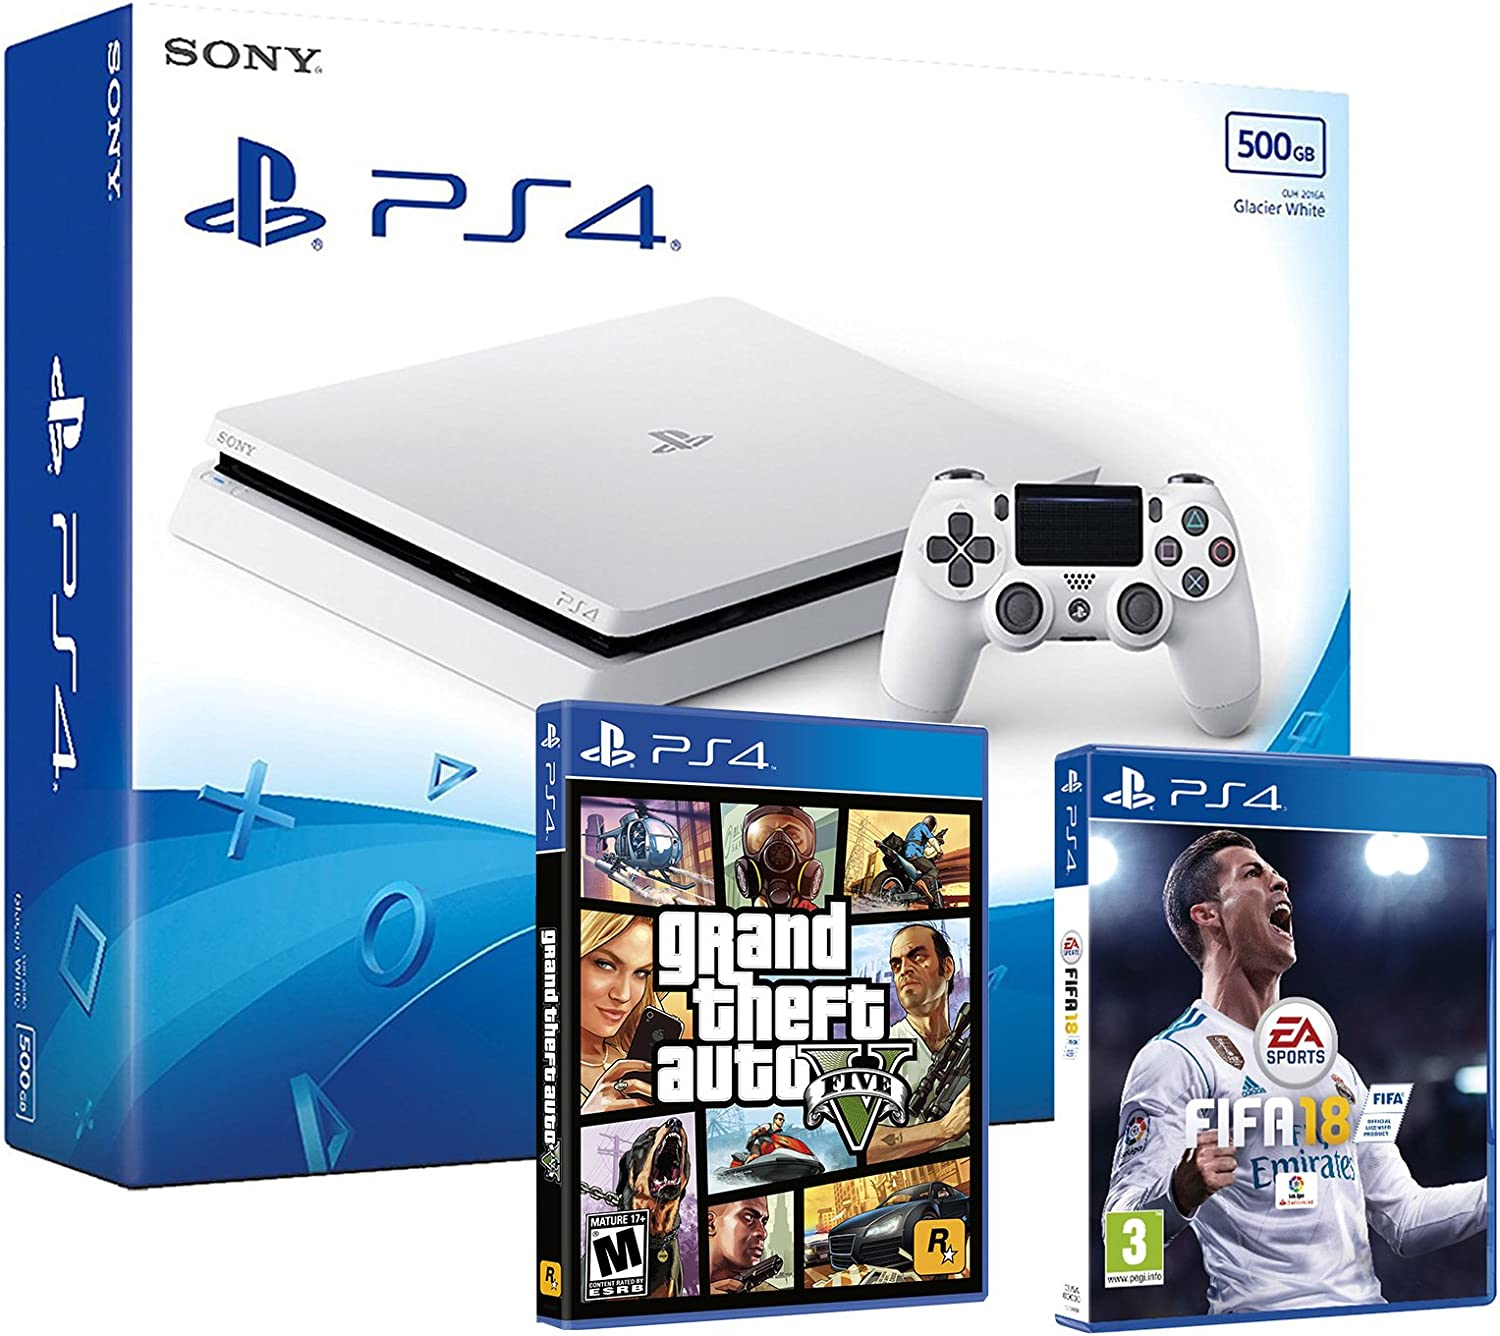 PS4 Slim 500Gb Blanca Playstation 4 Consola - Pack 2 Juegos - FIFA 18 + GTA V: Amazon.es: Videojuegos